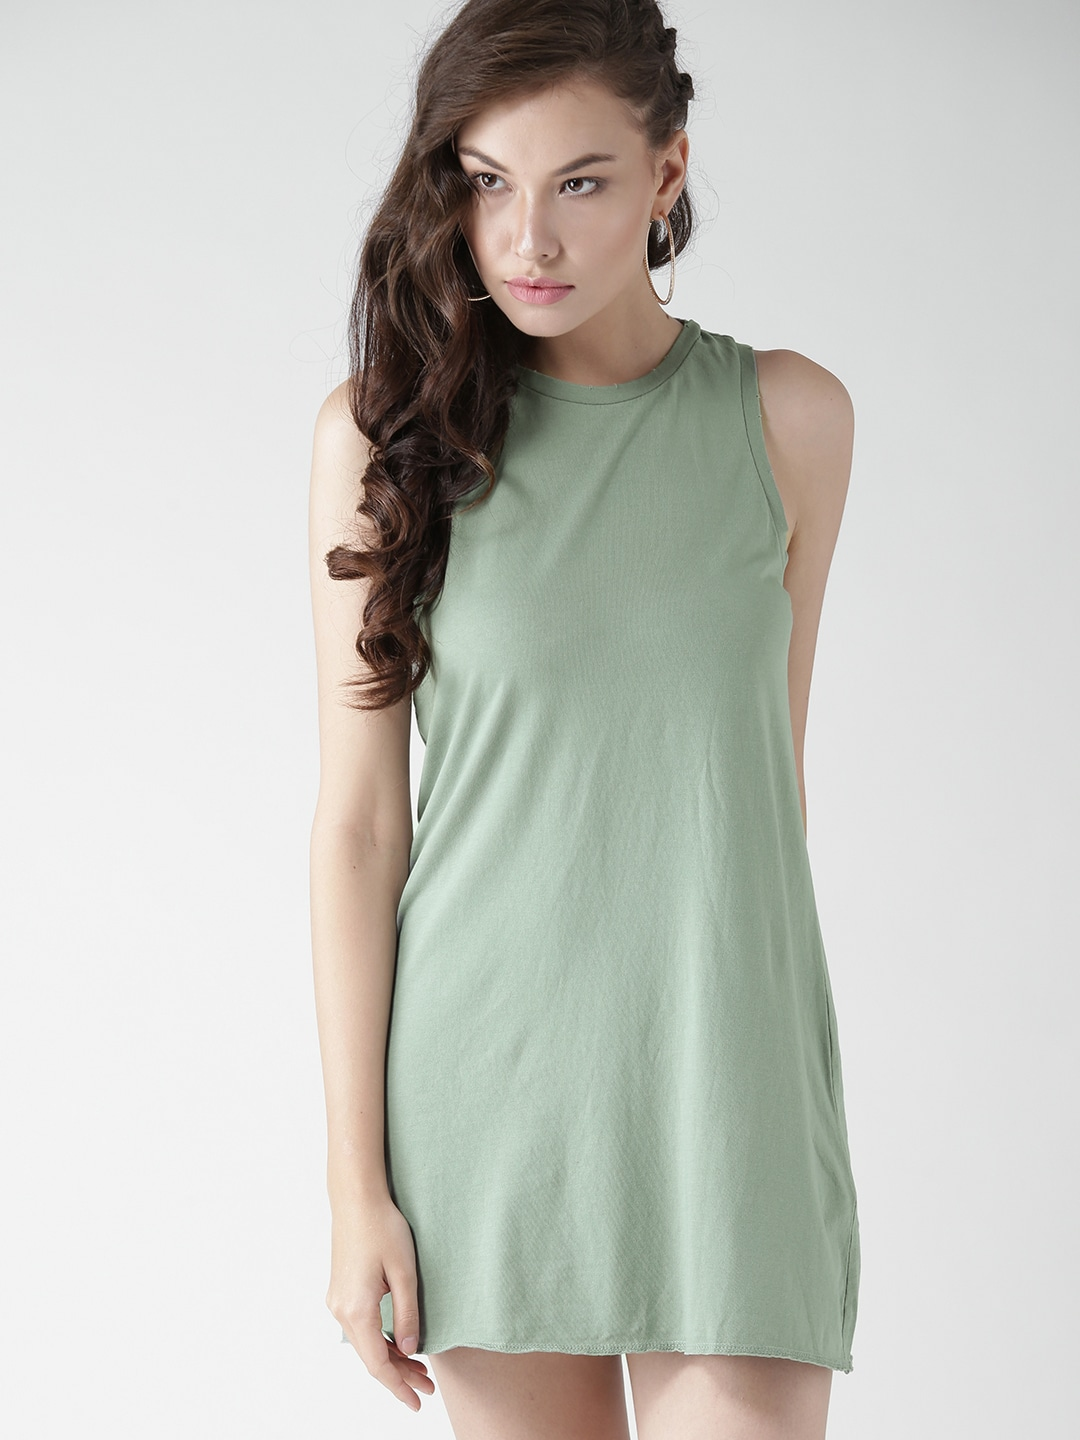 3f105b29ee2a73 Forever 21 - Exclusive Forever 21 Online Store in India at Myntra